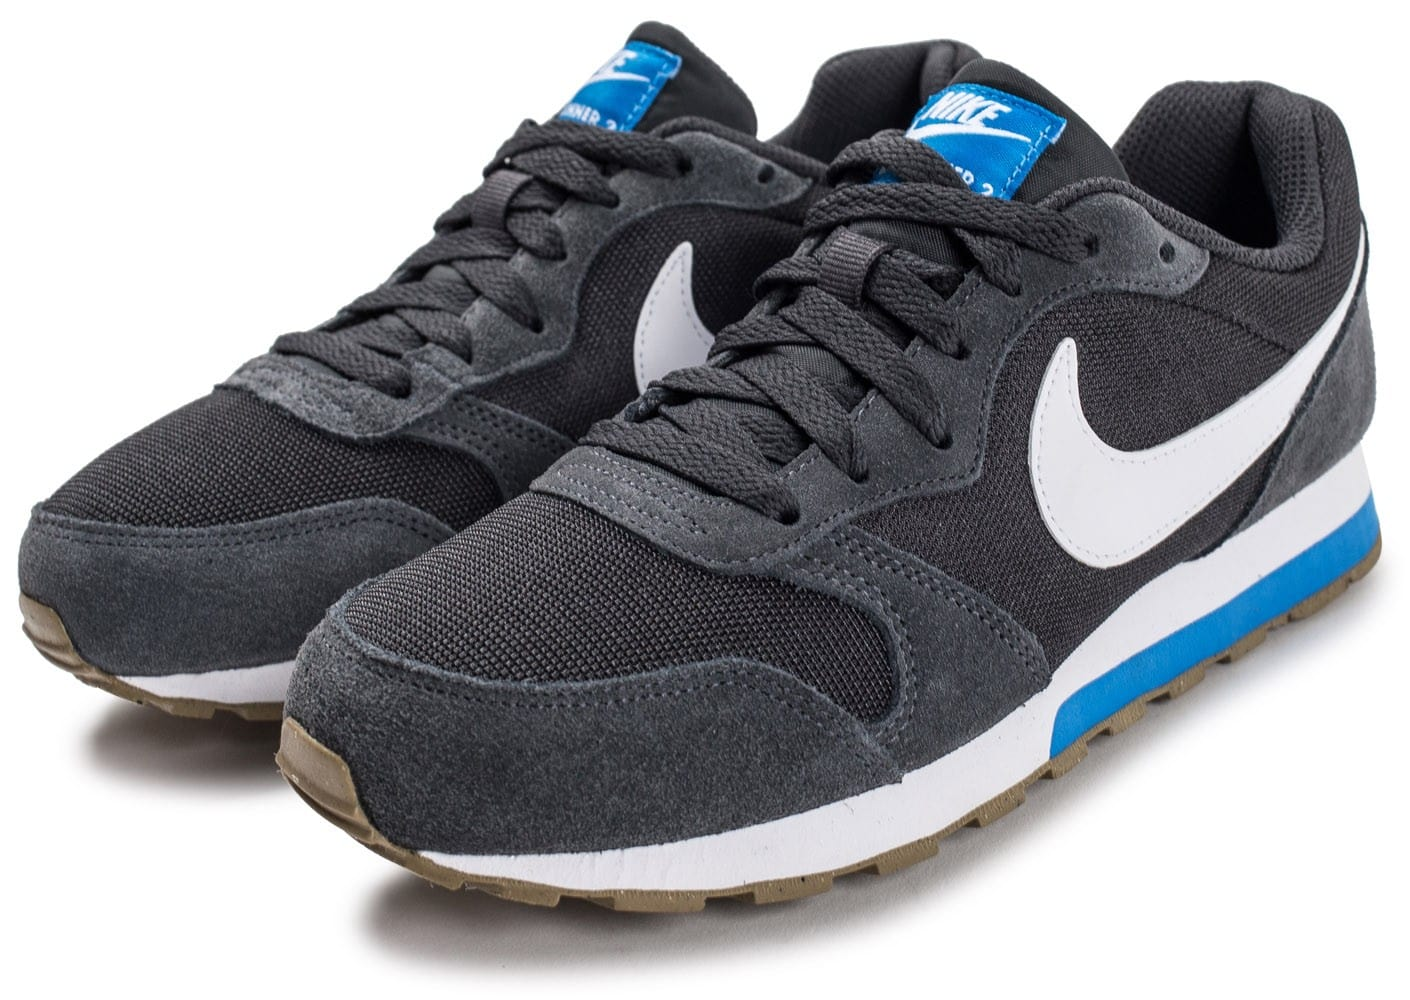 ... Chaussures Nike MD Runner 2 junior grise vue intérieure ... 1f3c8aa4bd52